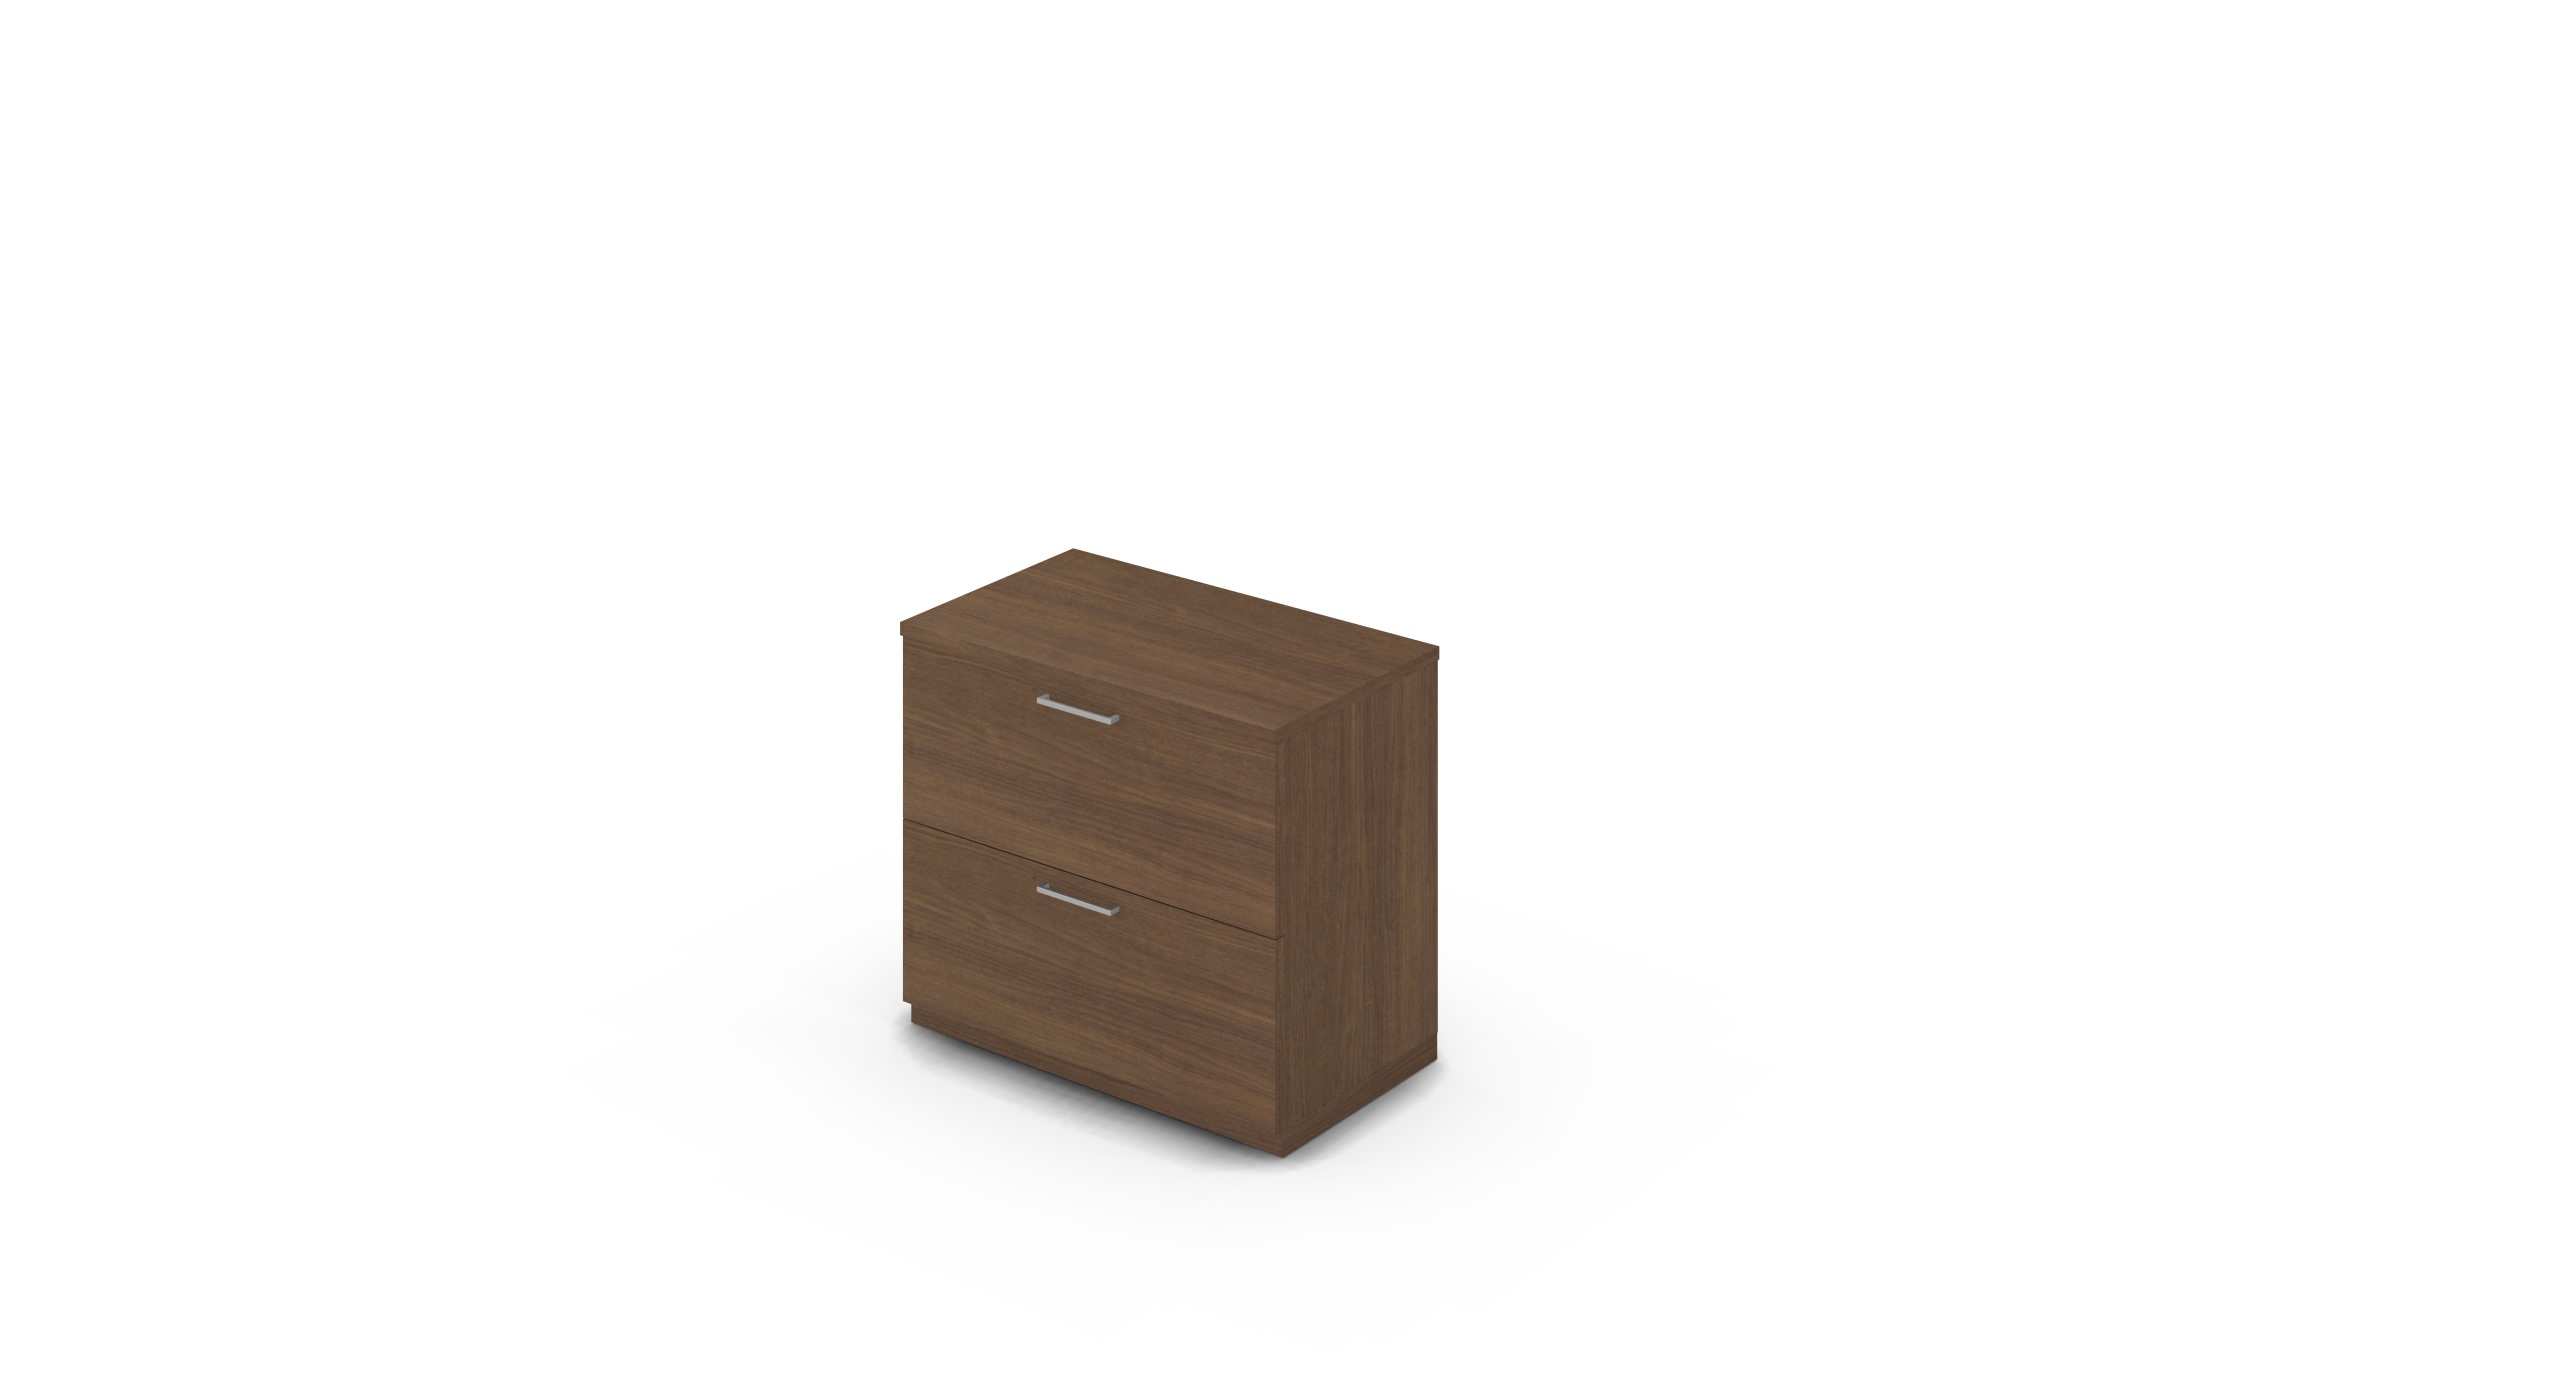 Cabinet_800x450x775_DR_Walnut_Bar_Square_NoCylinder